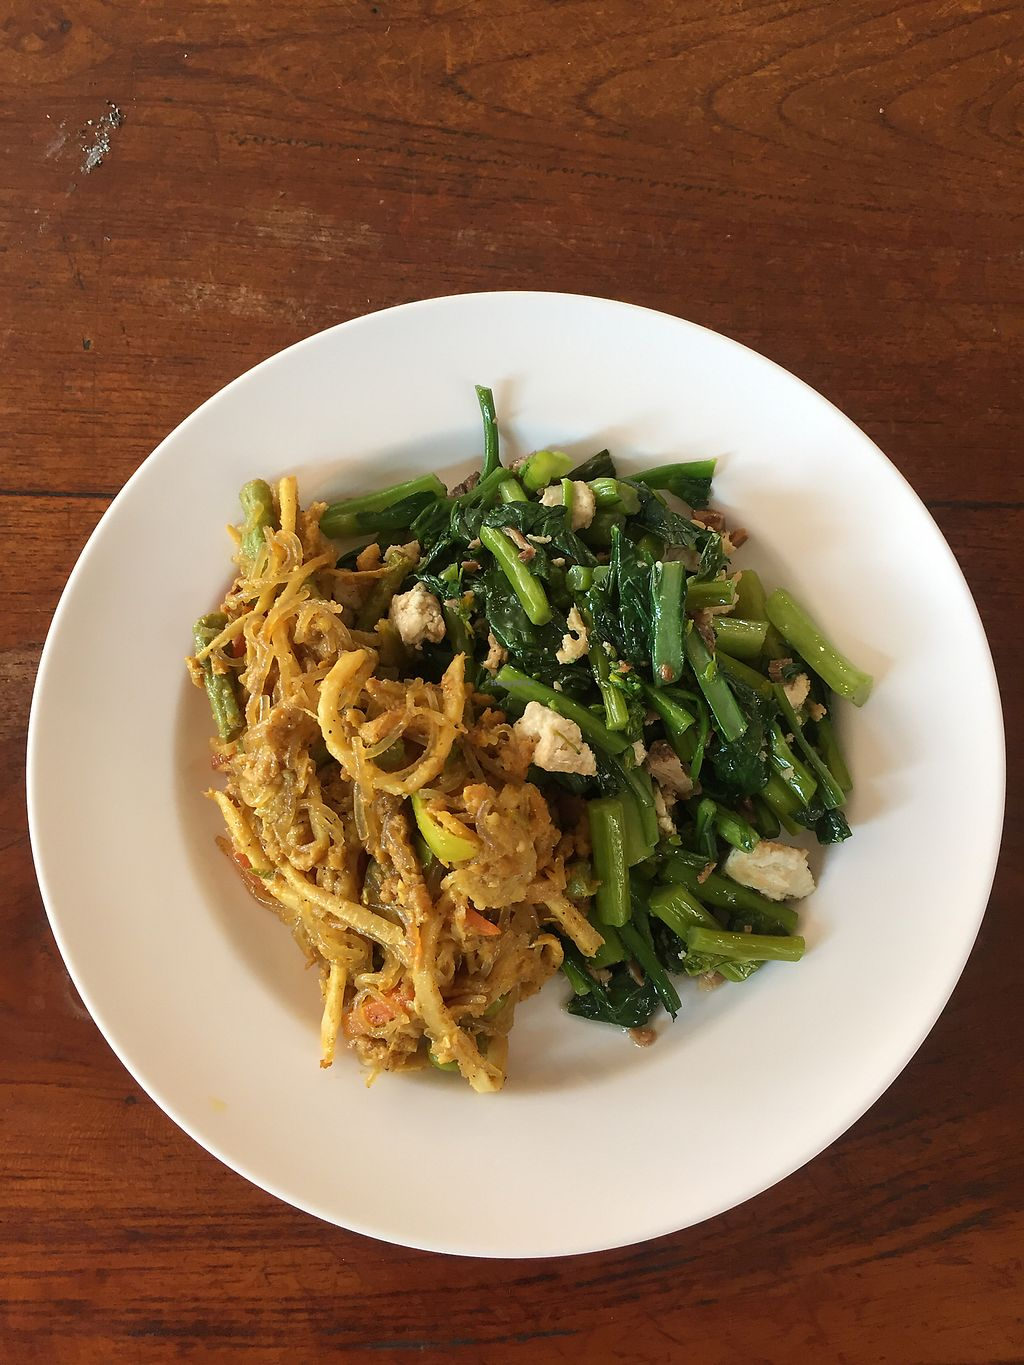 "Photo of Chew Xin Jai  by <a href=""/members/profile/war.vic"">war.vic</a> <br/>2 dishes - 35 baht! They were delicious <br/> March 3, 2018  - <a href='/contact/abuse/image/14583/366103'>Report</a>"